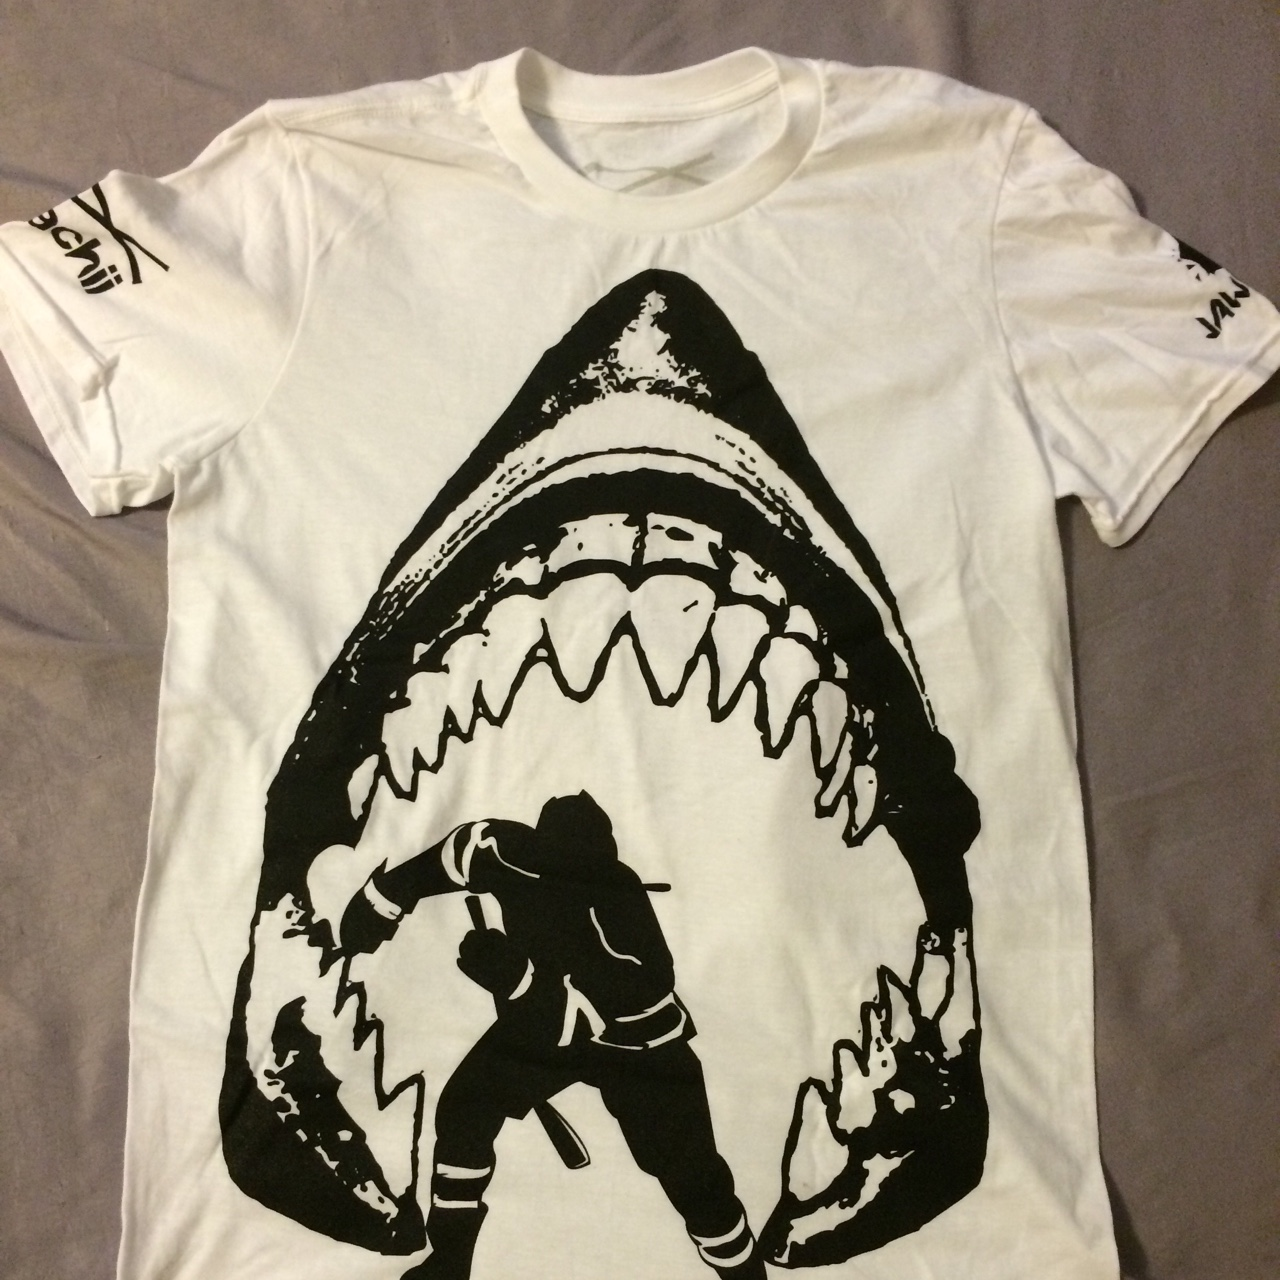 separation shoes 4bf91 3daa7 Calling all SJ Sharks fans! This shirt is available... - Depop